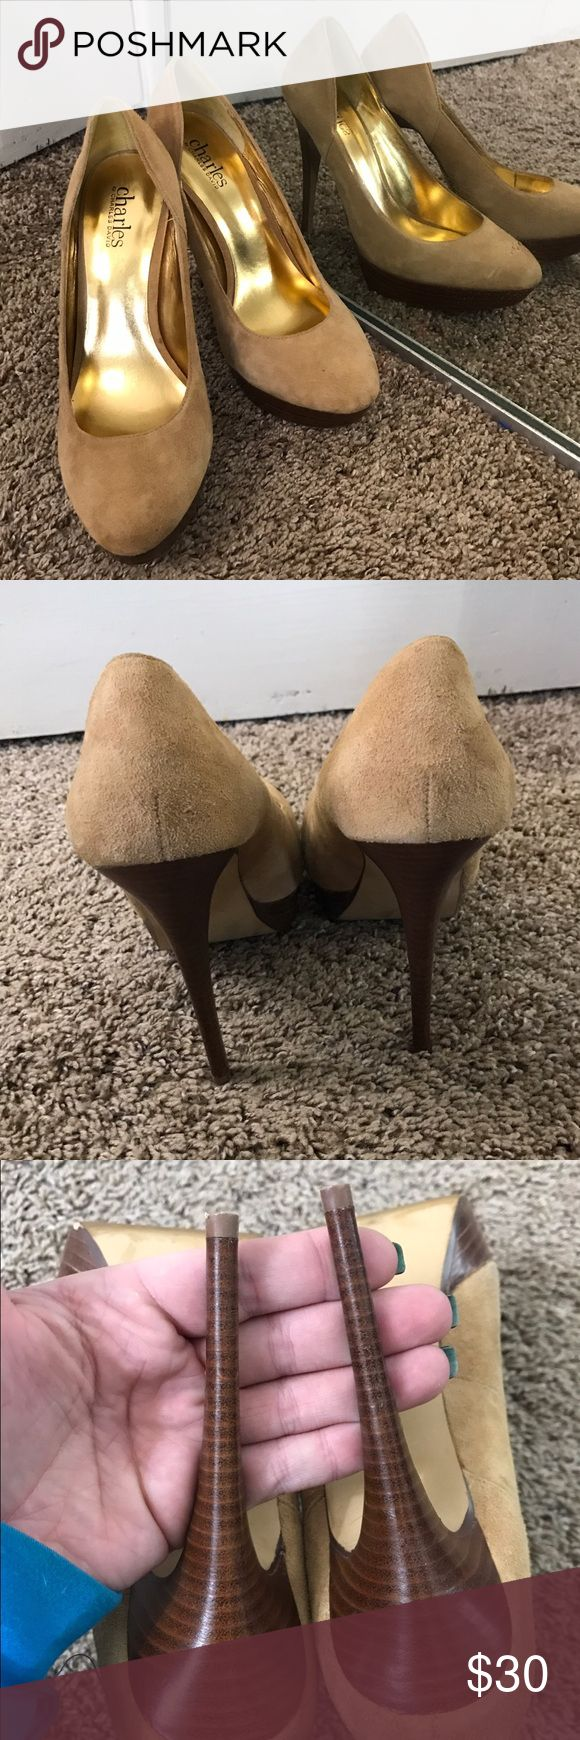 Charles by Charles David nude pumps In great shape Charles David Shoes